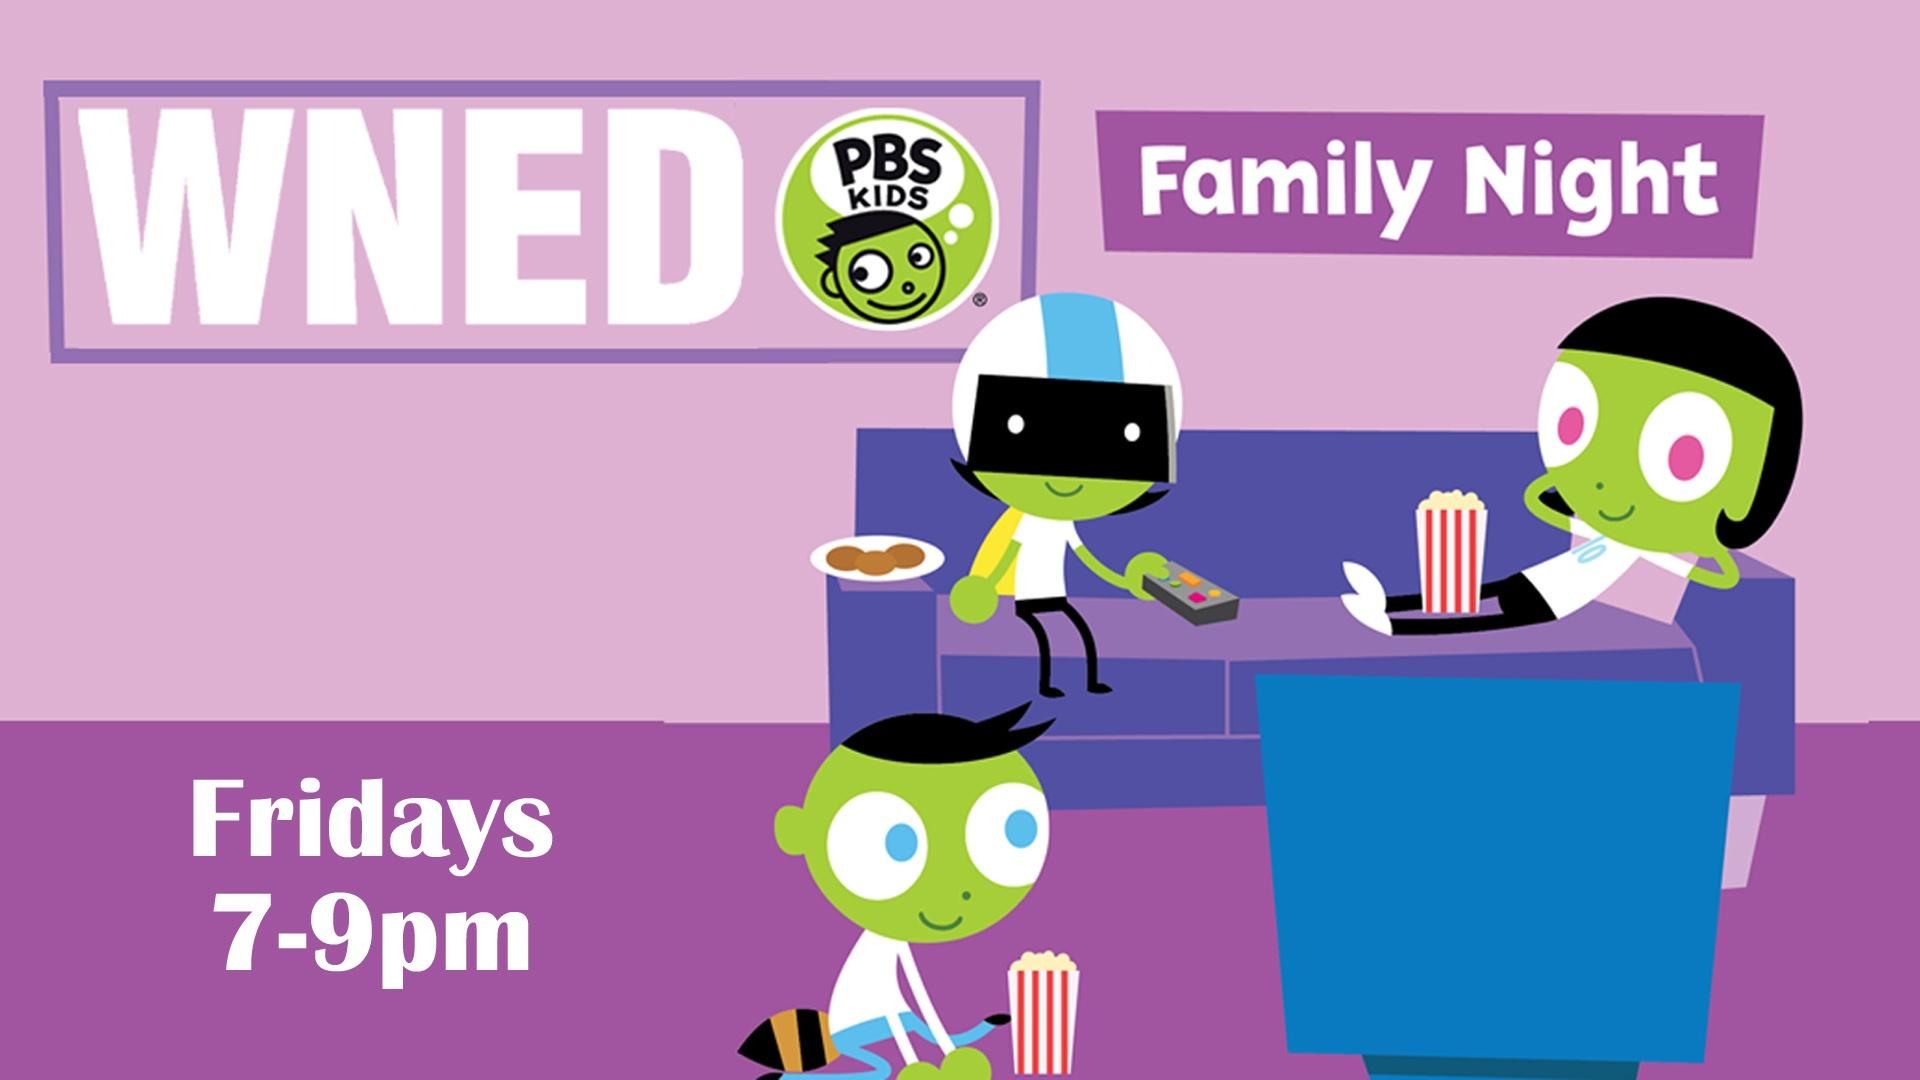 WNED PBS KIDS Channel Family Night